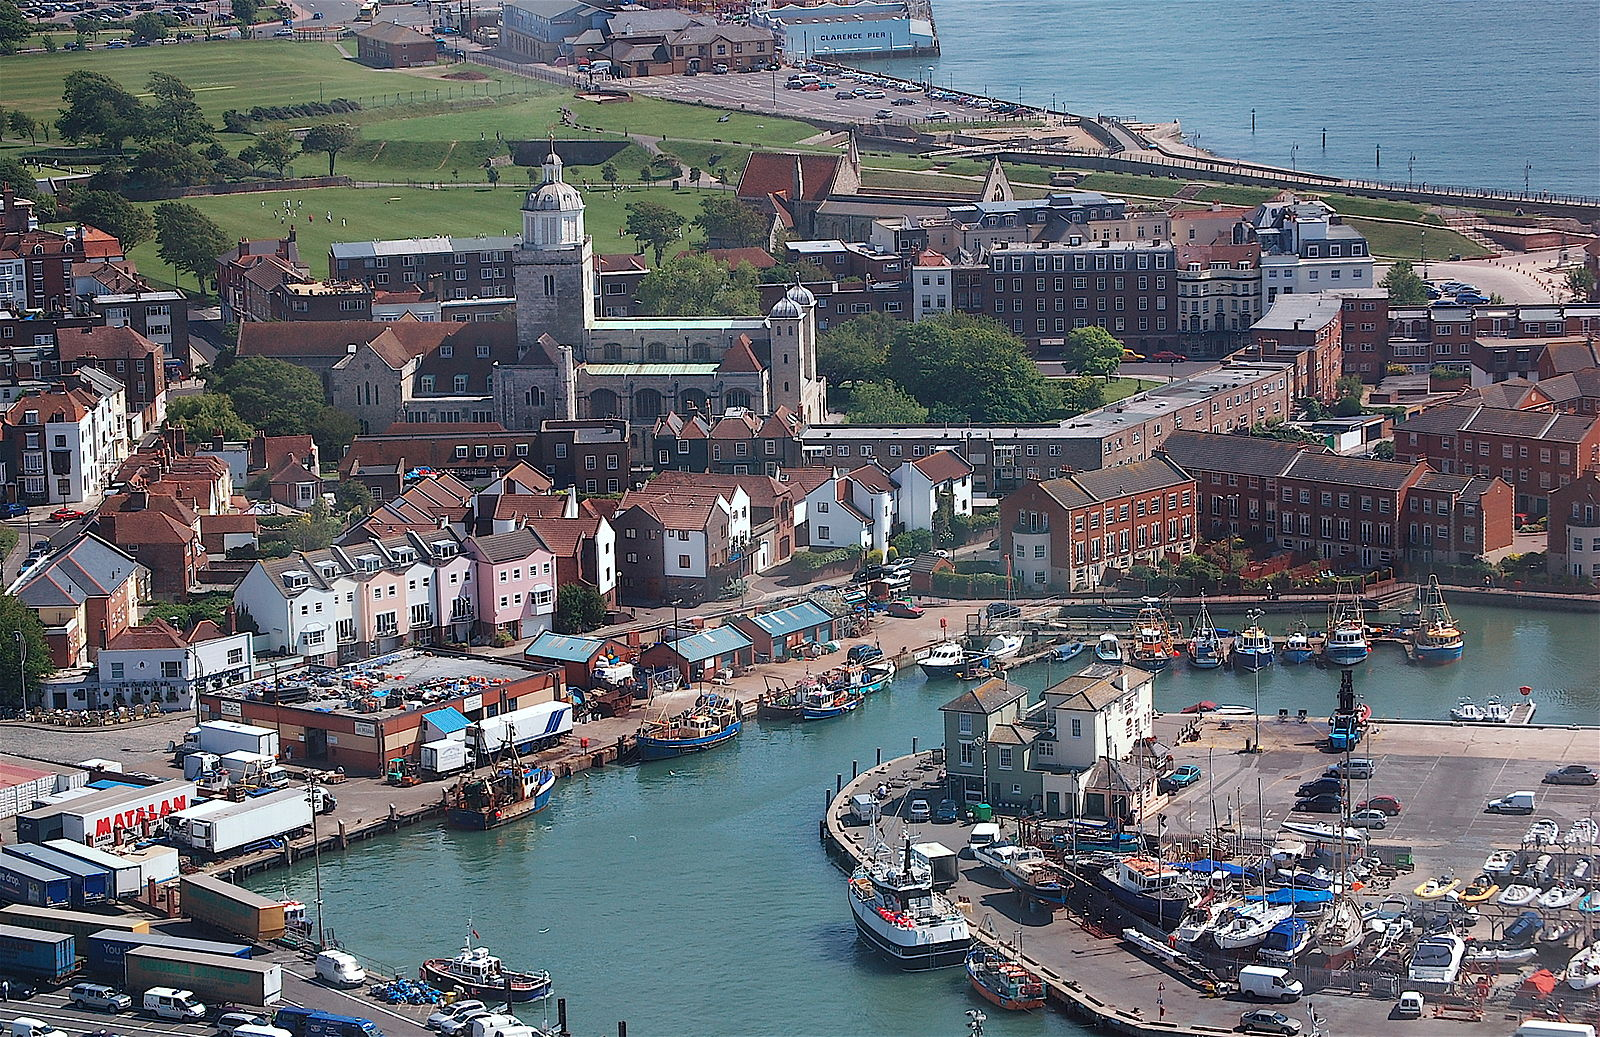 Old Portsmouth from the Spinnaker Tower